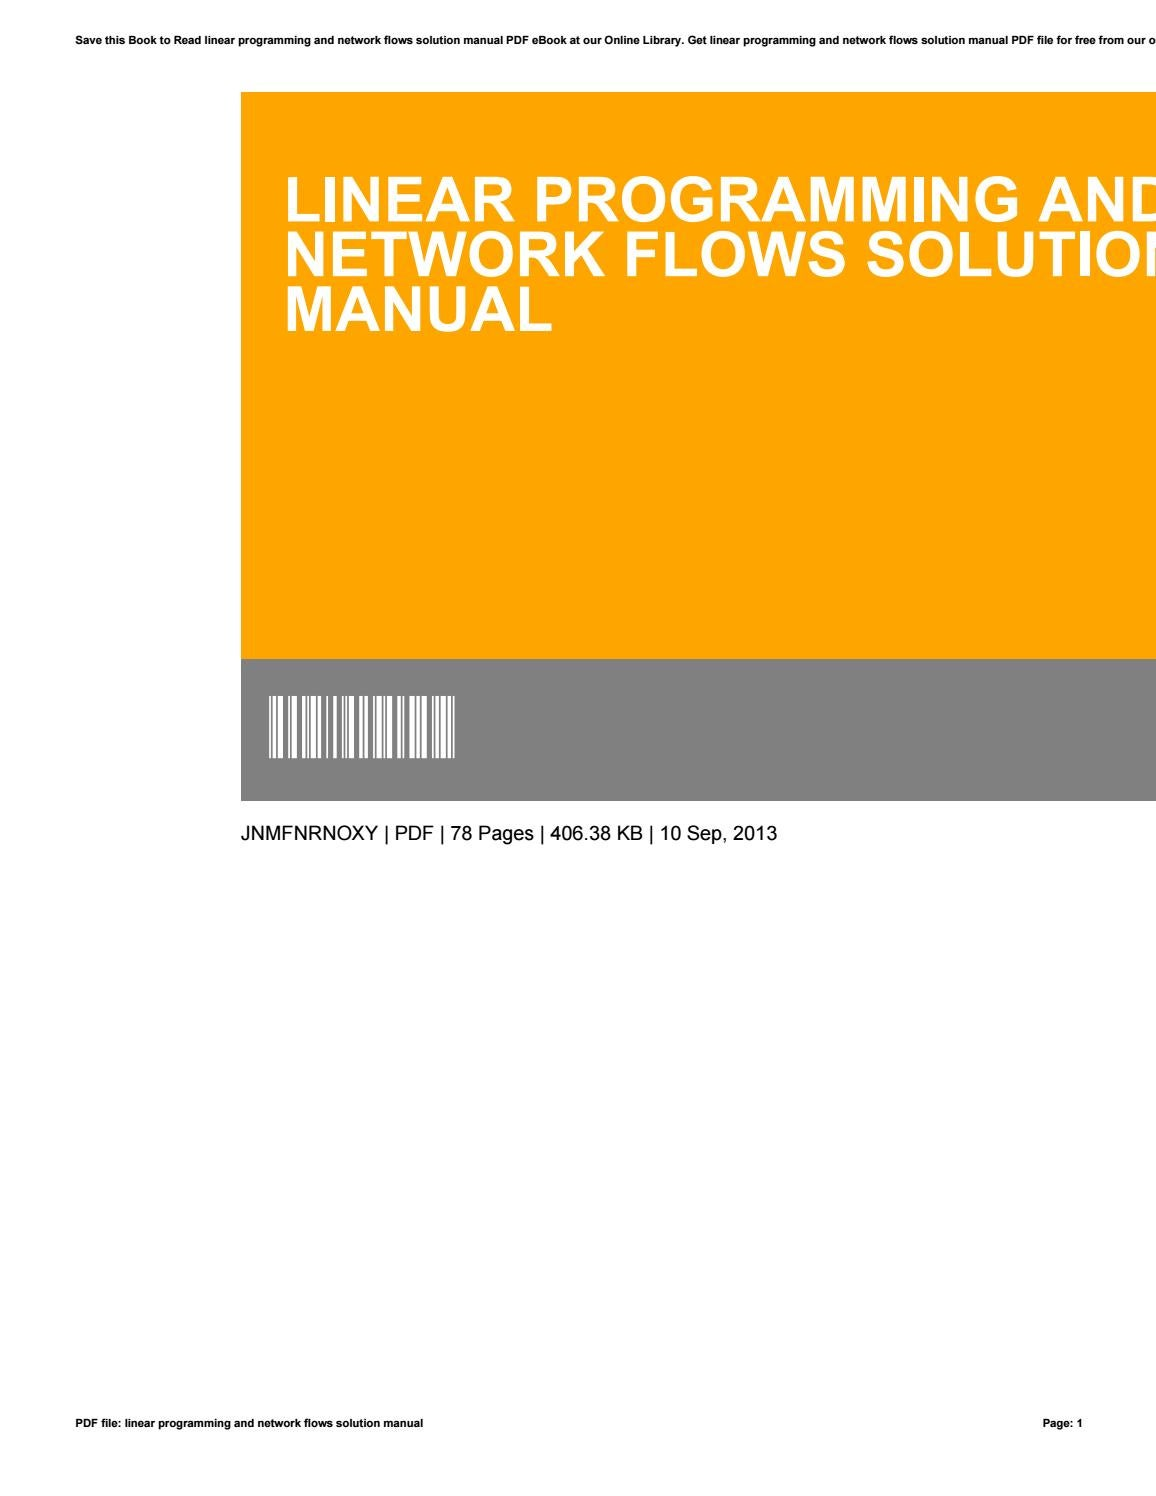 bazaraa linear programming solution manual pdf